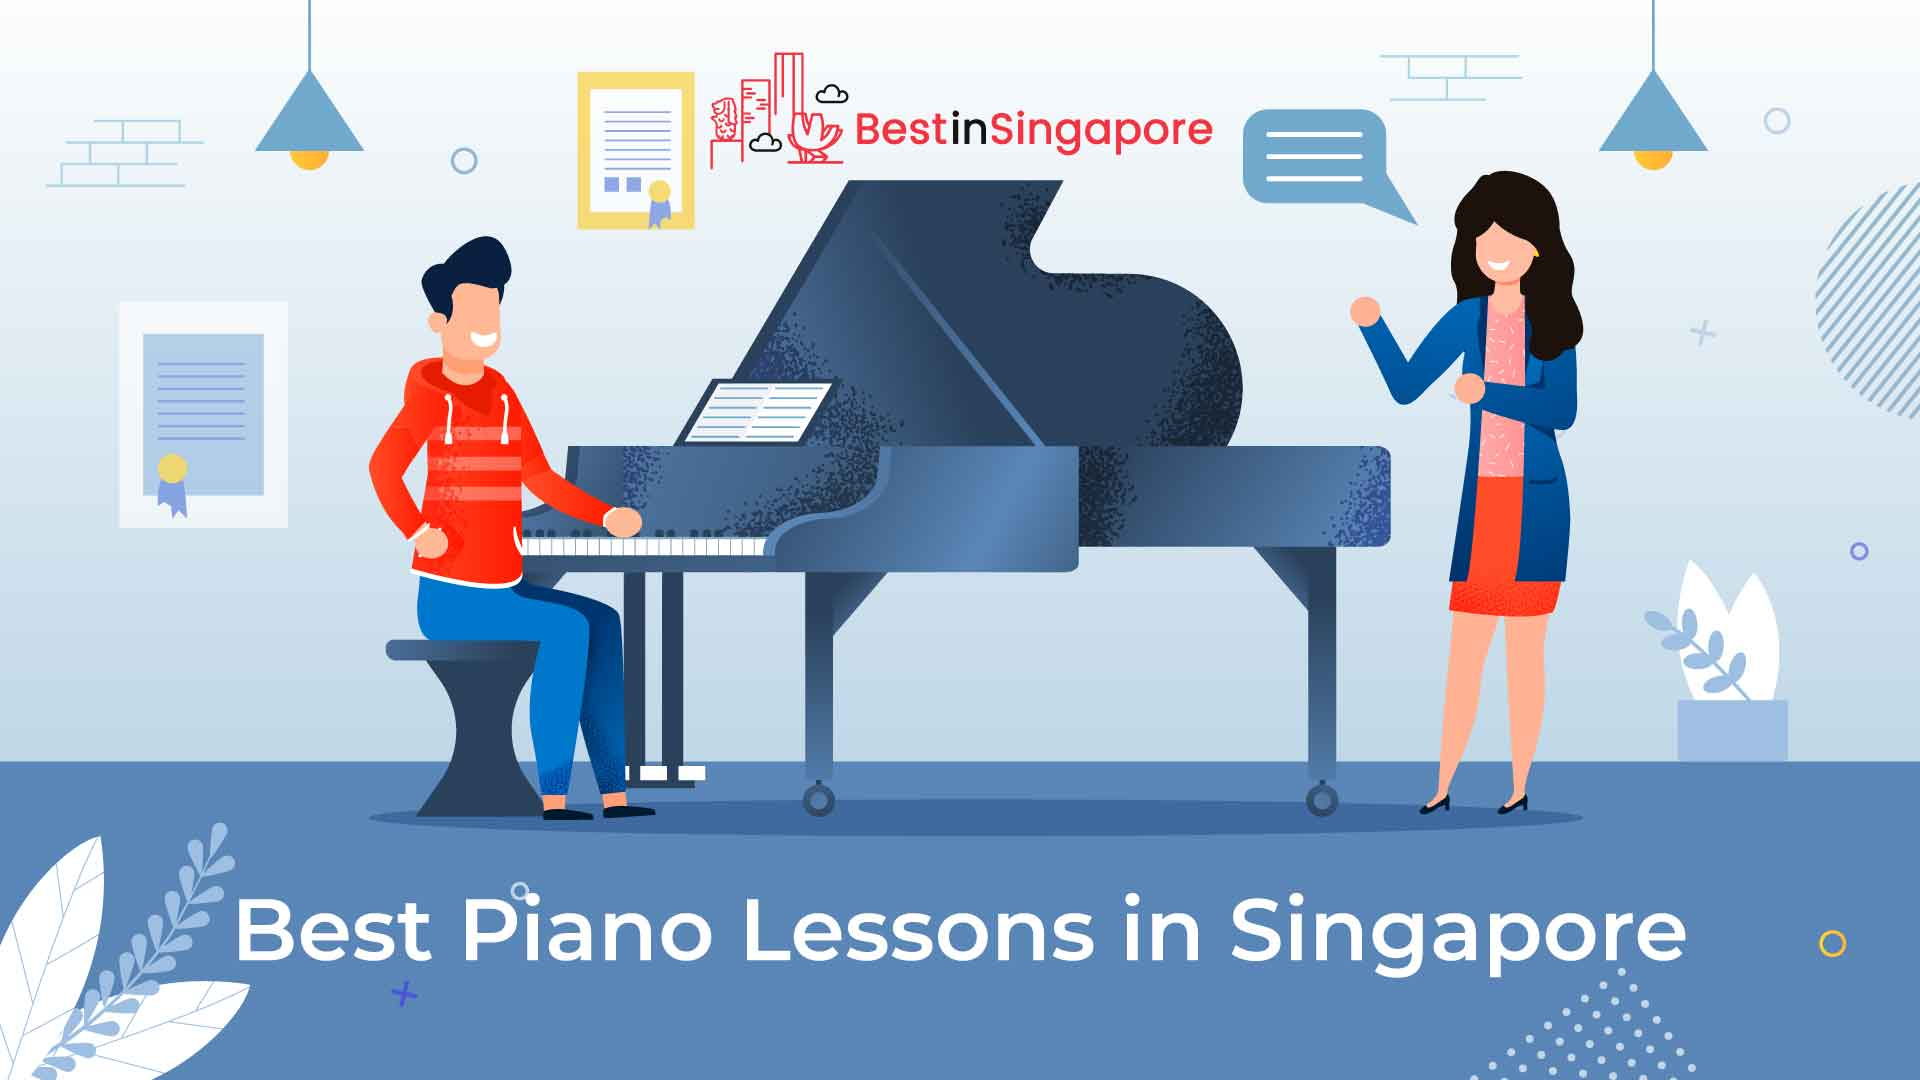 Best Piano Lessons in Singapore